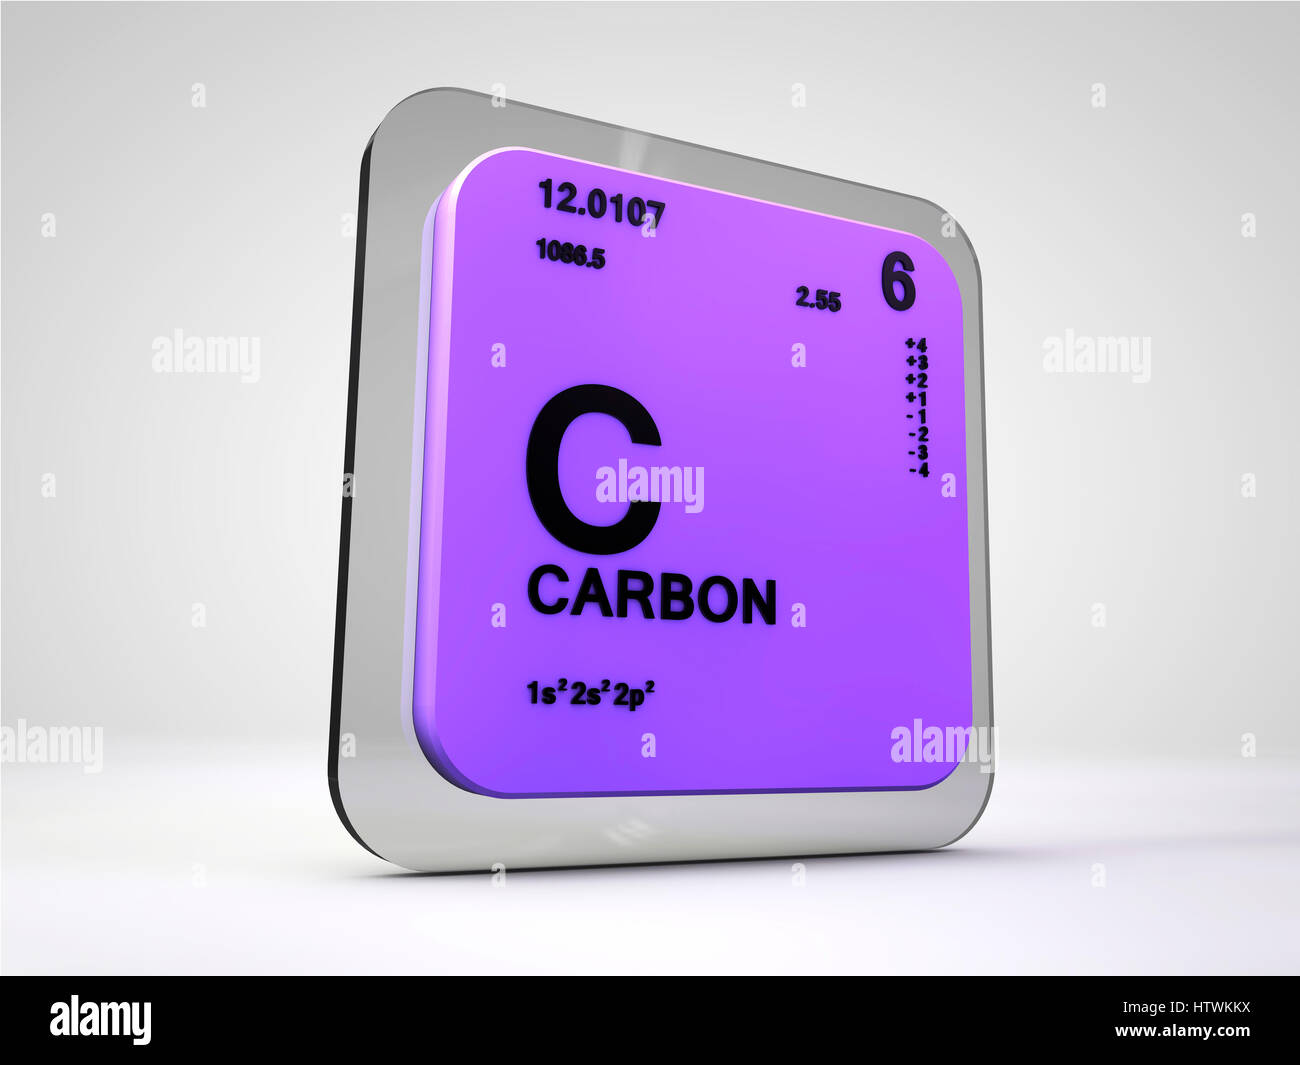 Carbon c chemical element periodic table 3d render stock photo carbon c chemical element periodic table 3d render urtaz Image collections